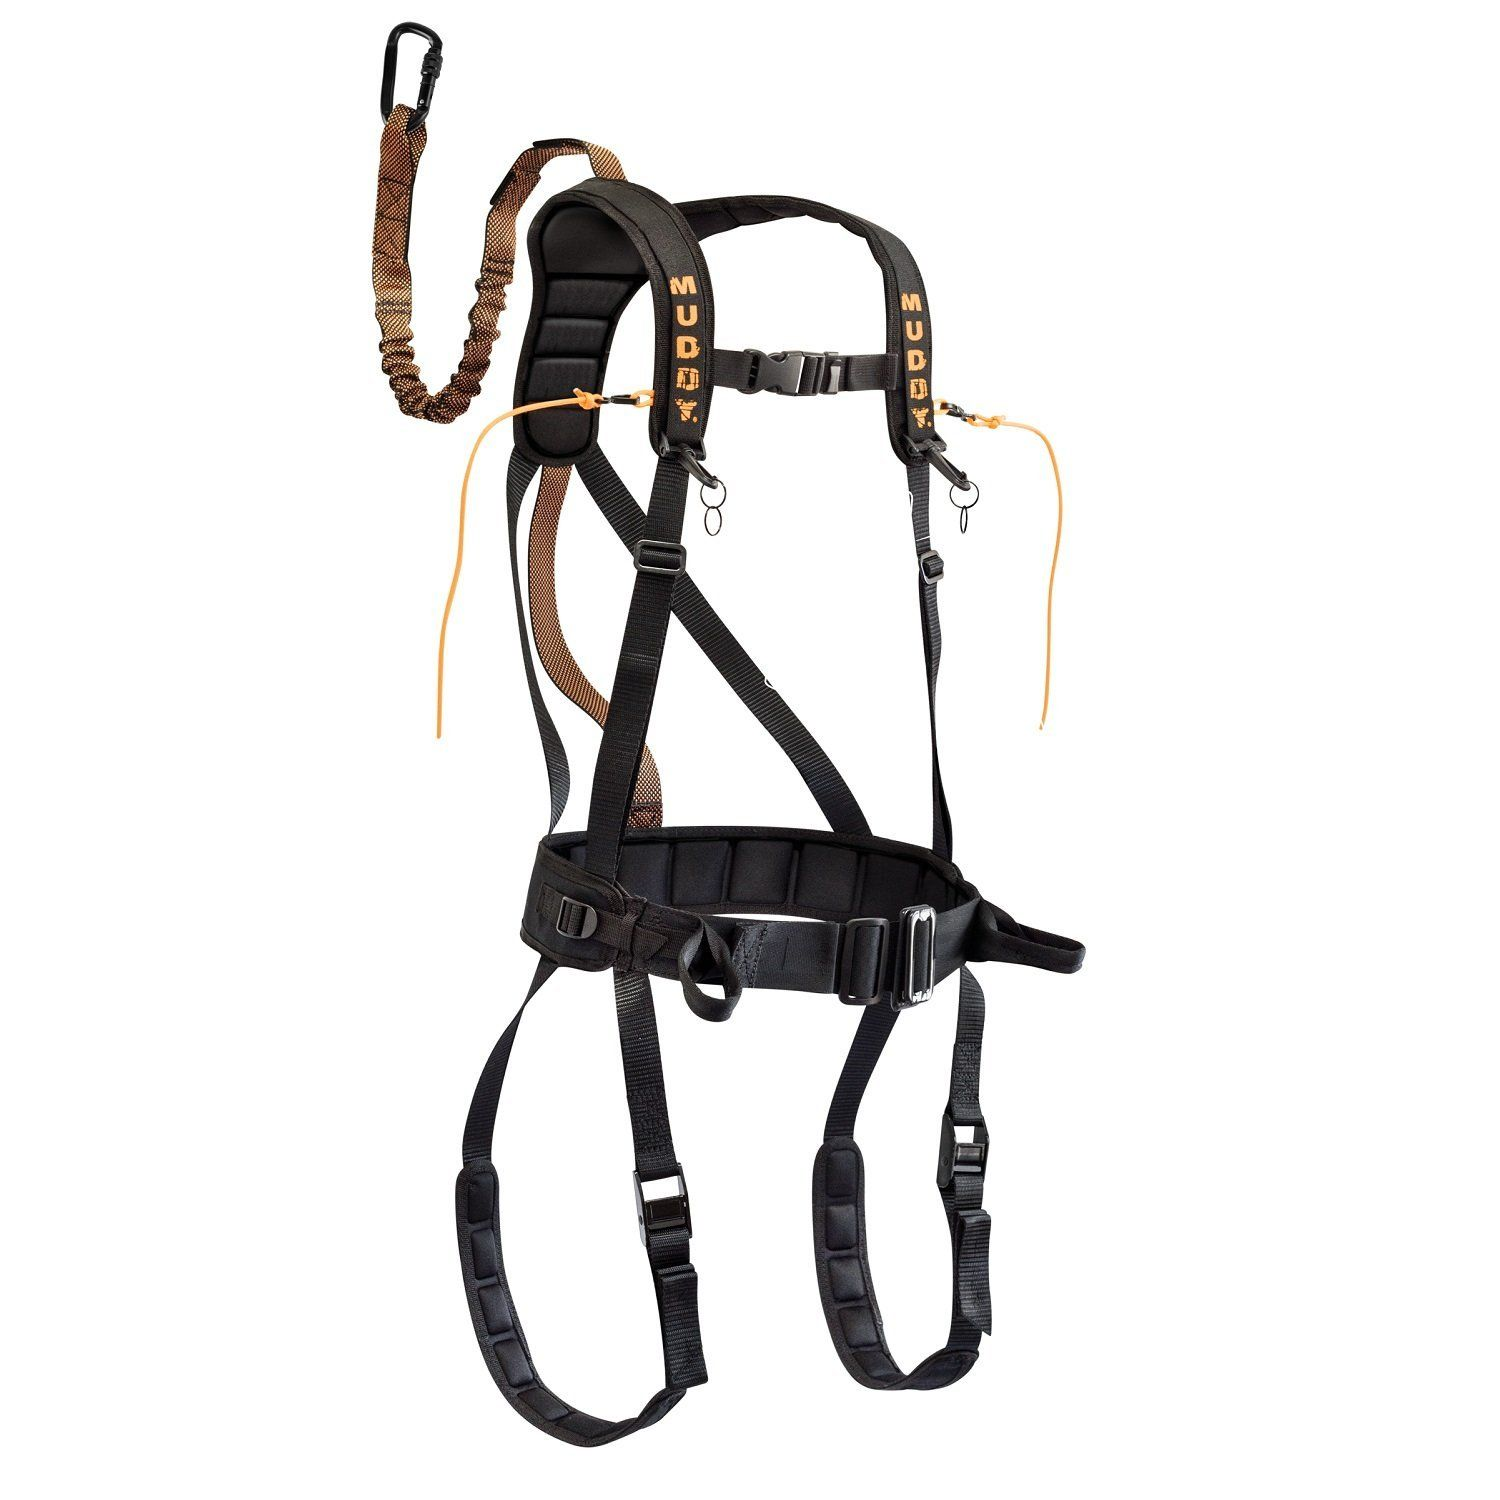 Muddy Safeguard Harness Up to 37 Off w/ Free Shipping — 5